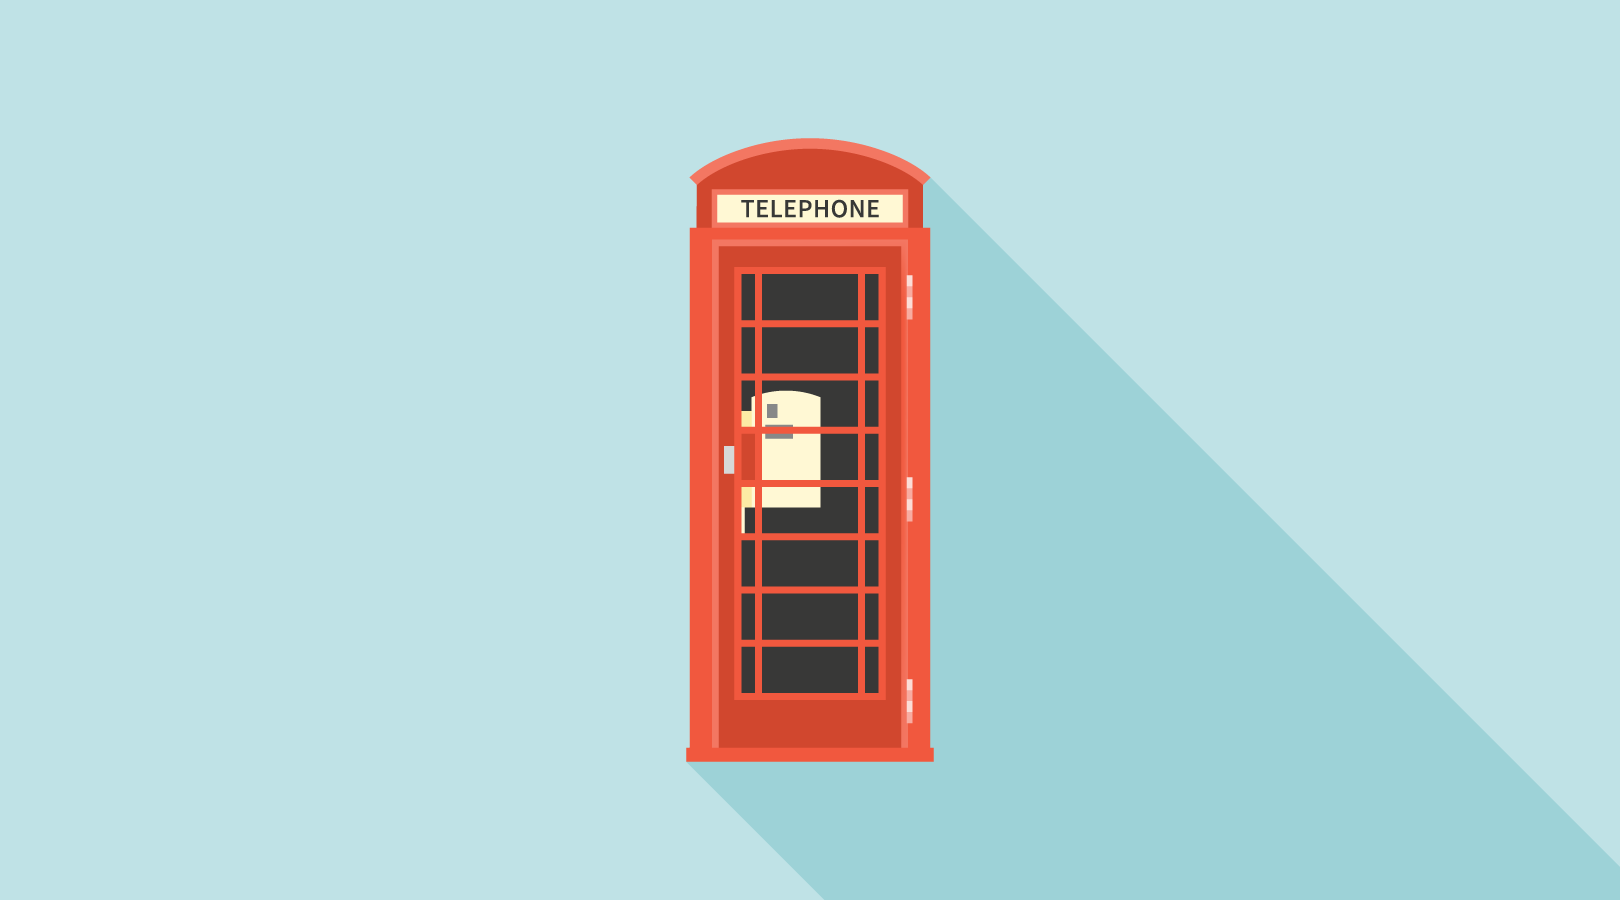 How to Optimize Phone Leads for Small Businesses